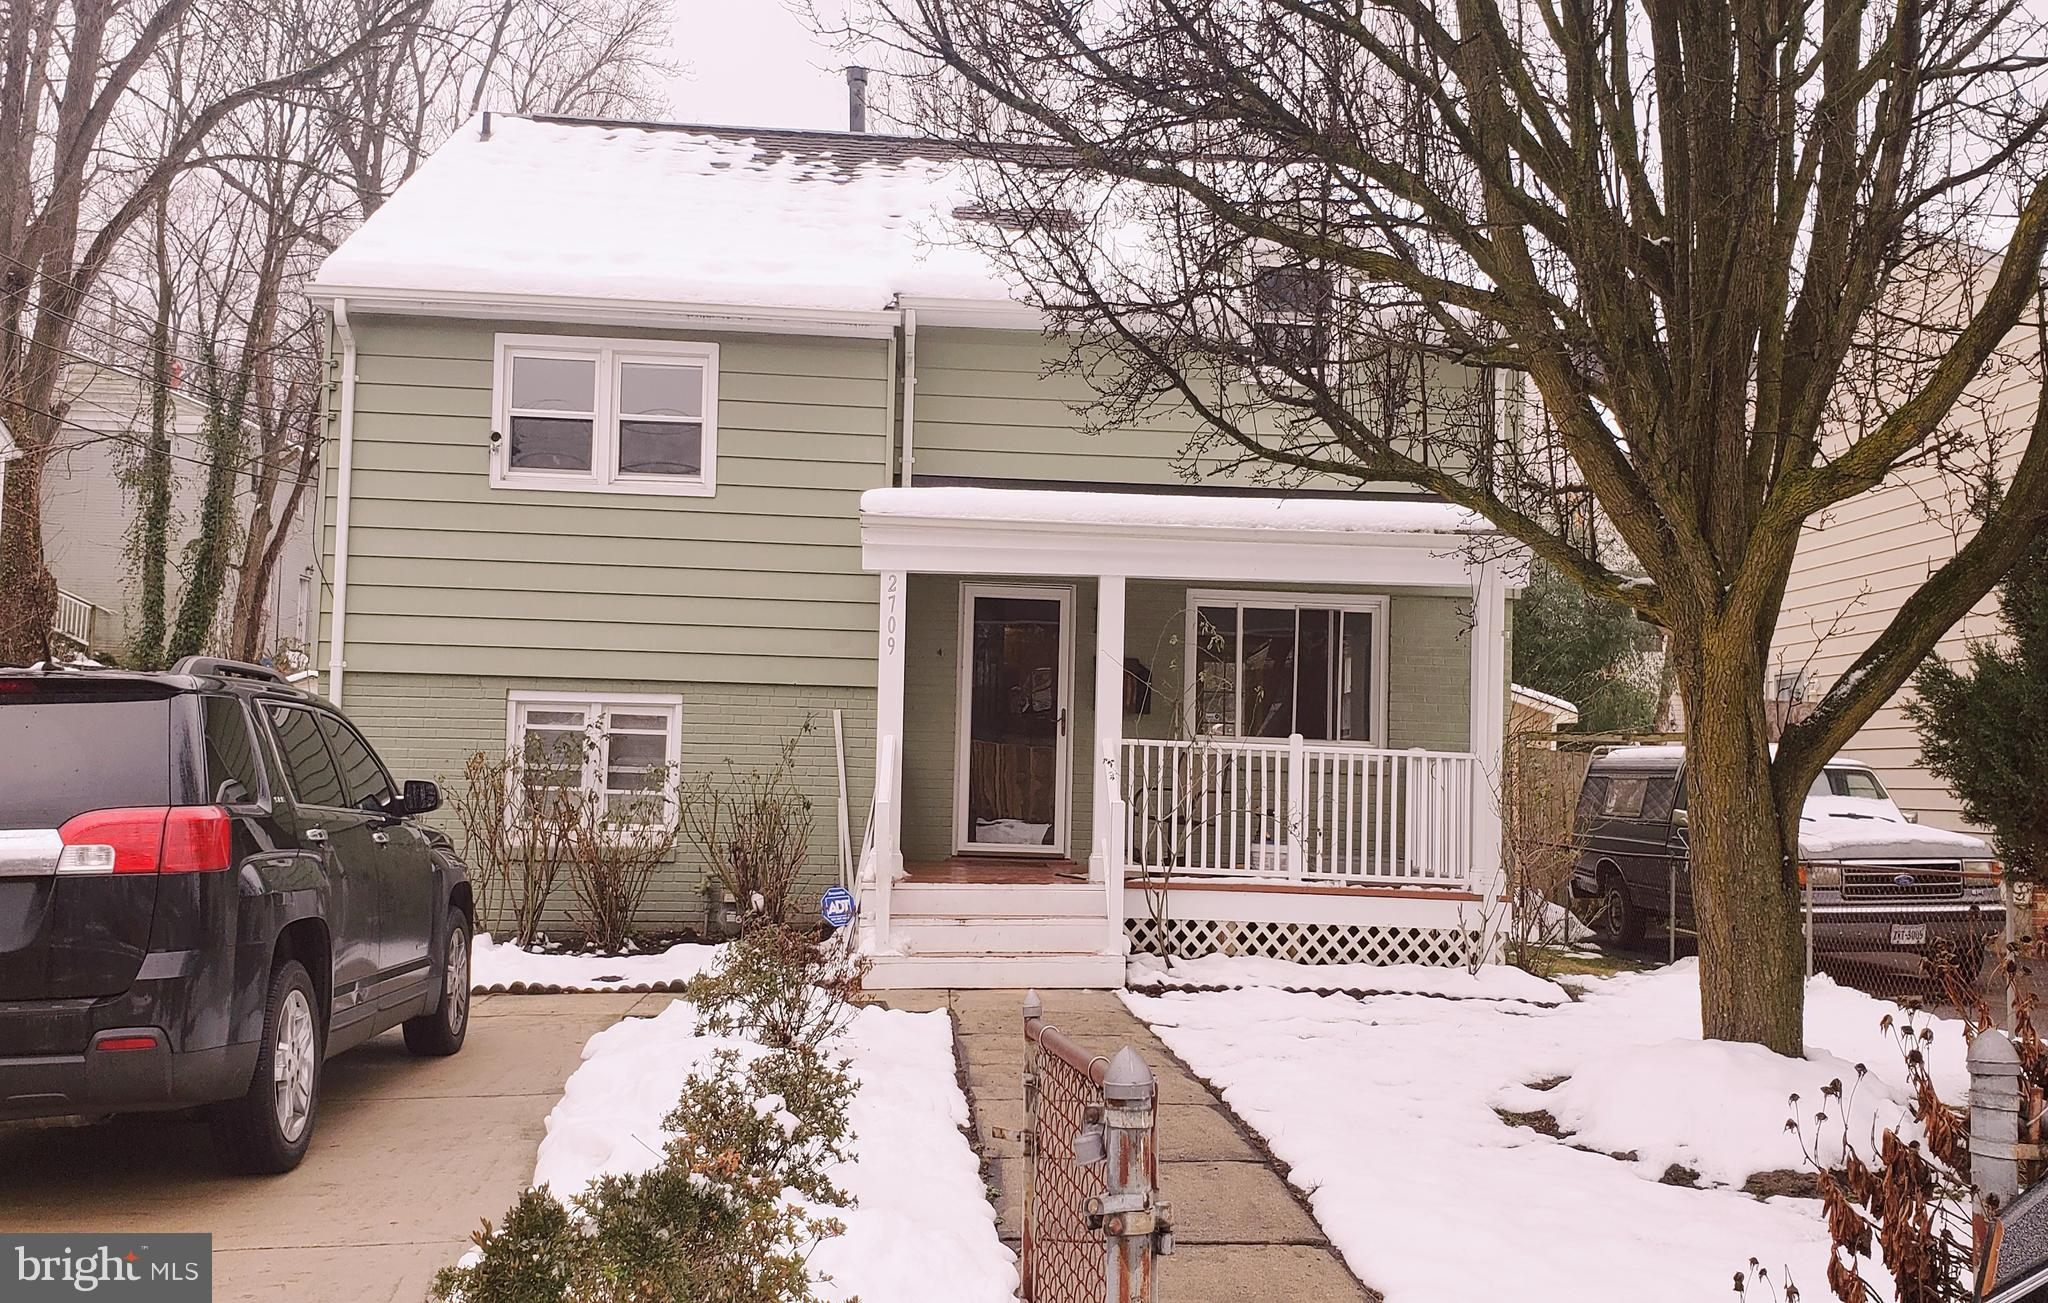 Recently remodeled, 5 BR, 3.5 BA with huge back yard and tree-shaded front yard. Off-street parking.   Close to bus lines, Metro, Rt 1 and Rt 495.  Shop at Beacon Mall, Belle View Shopping Center, and Old Town Alexandria.